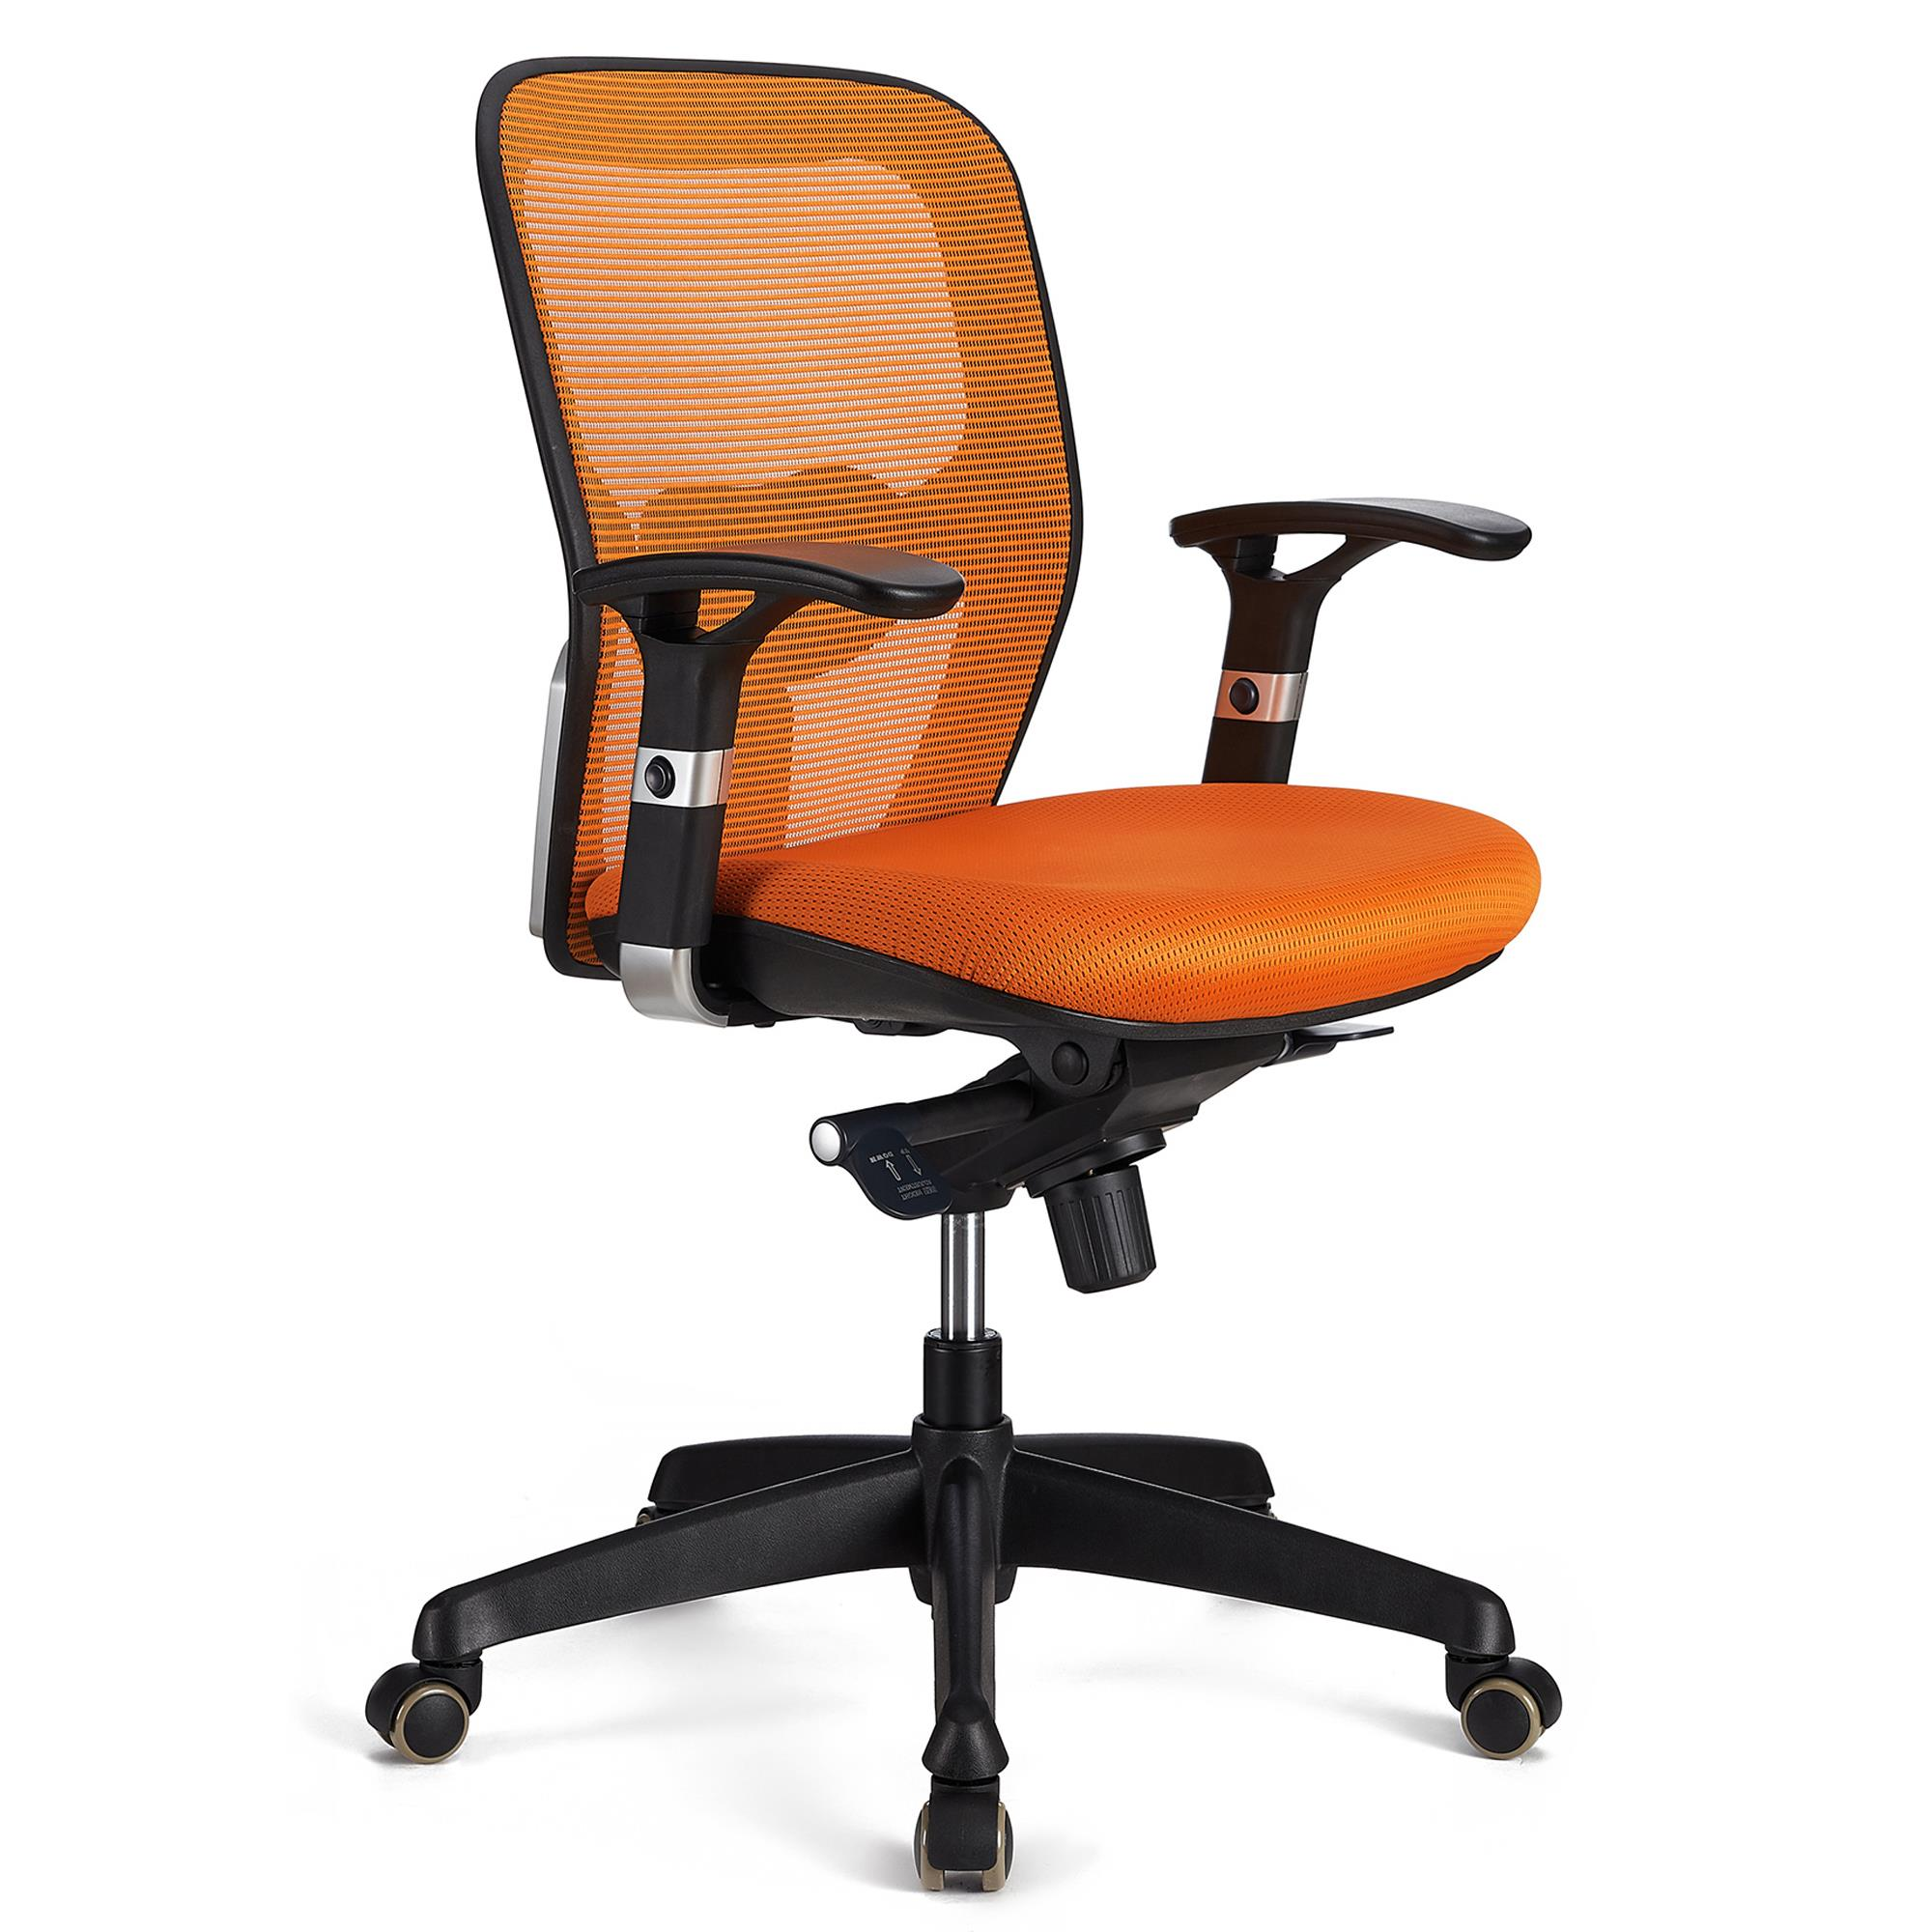 Chaise ergonomique FELIX, Support Lombaire Ajustable, Adapté utilisation 8h, Orange